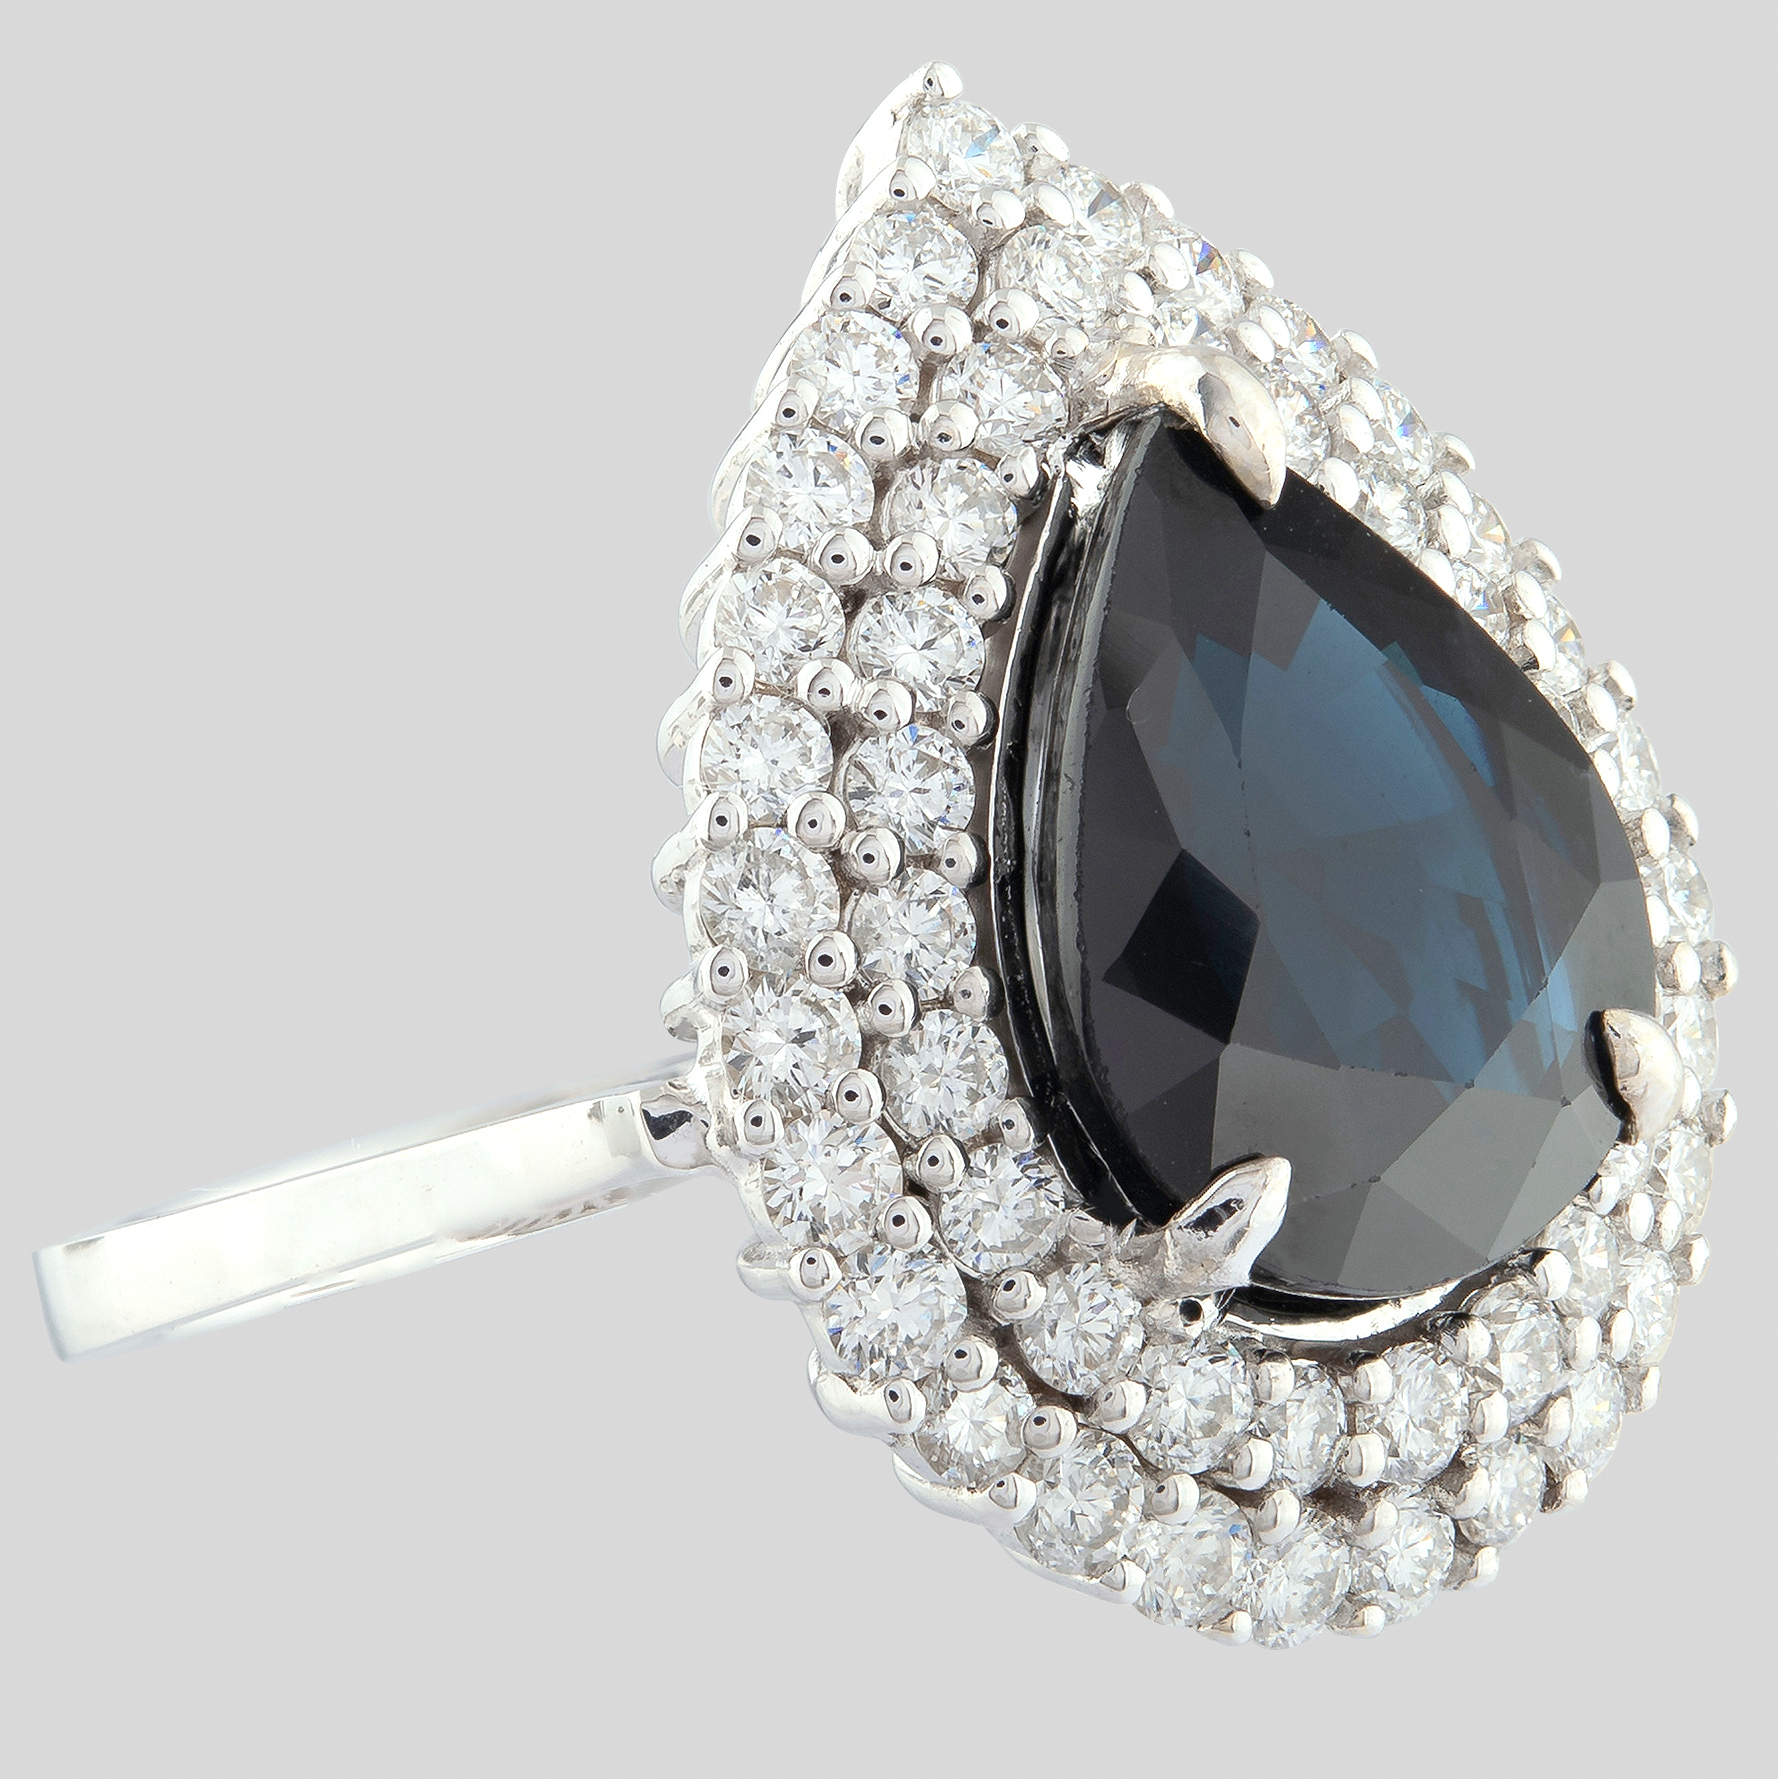 14K White Gold Cluster Ring 5,75 Ct. Natural Sapphire - 1,40 Ct. Diamond - Image 4 of 4